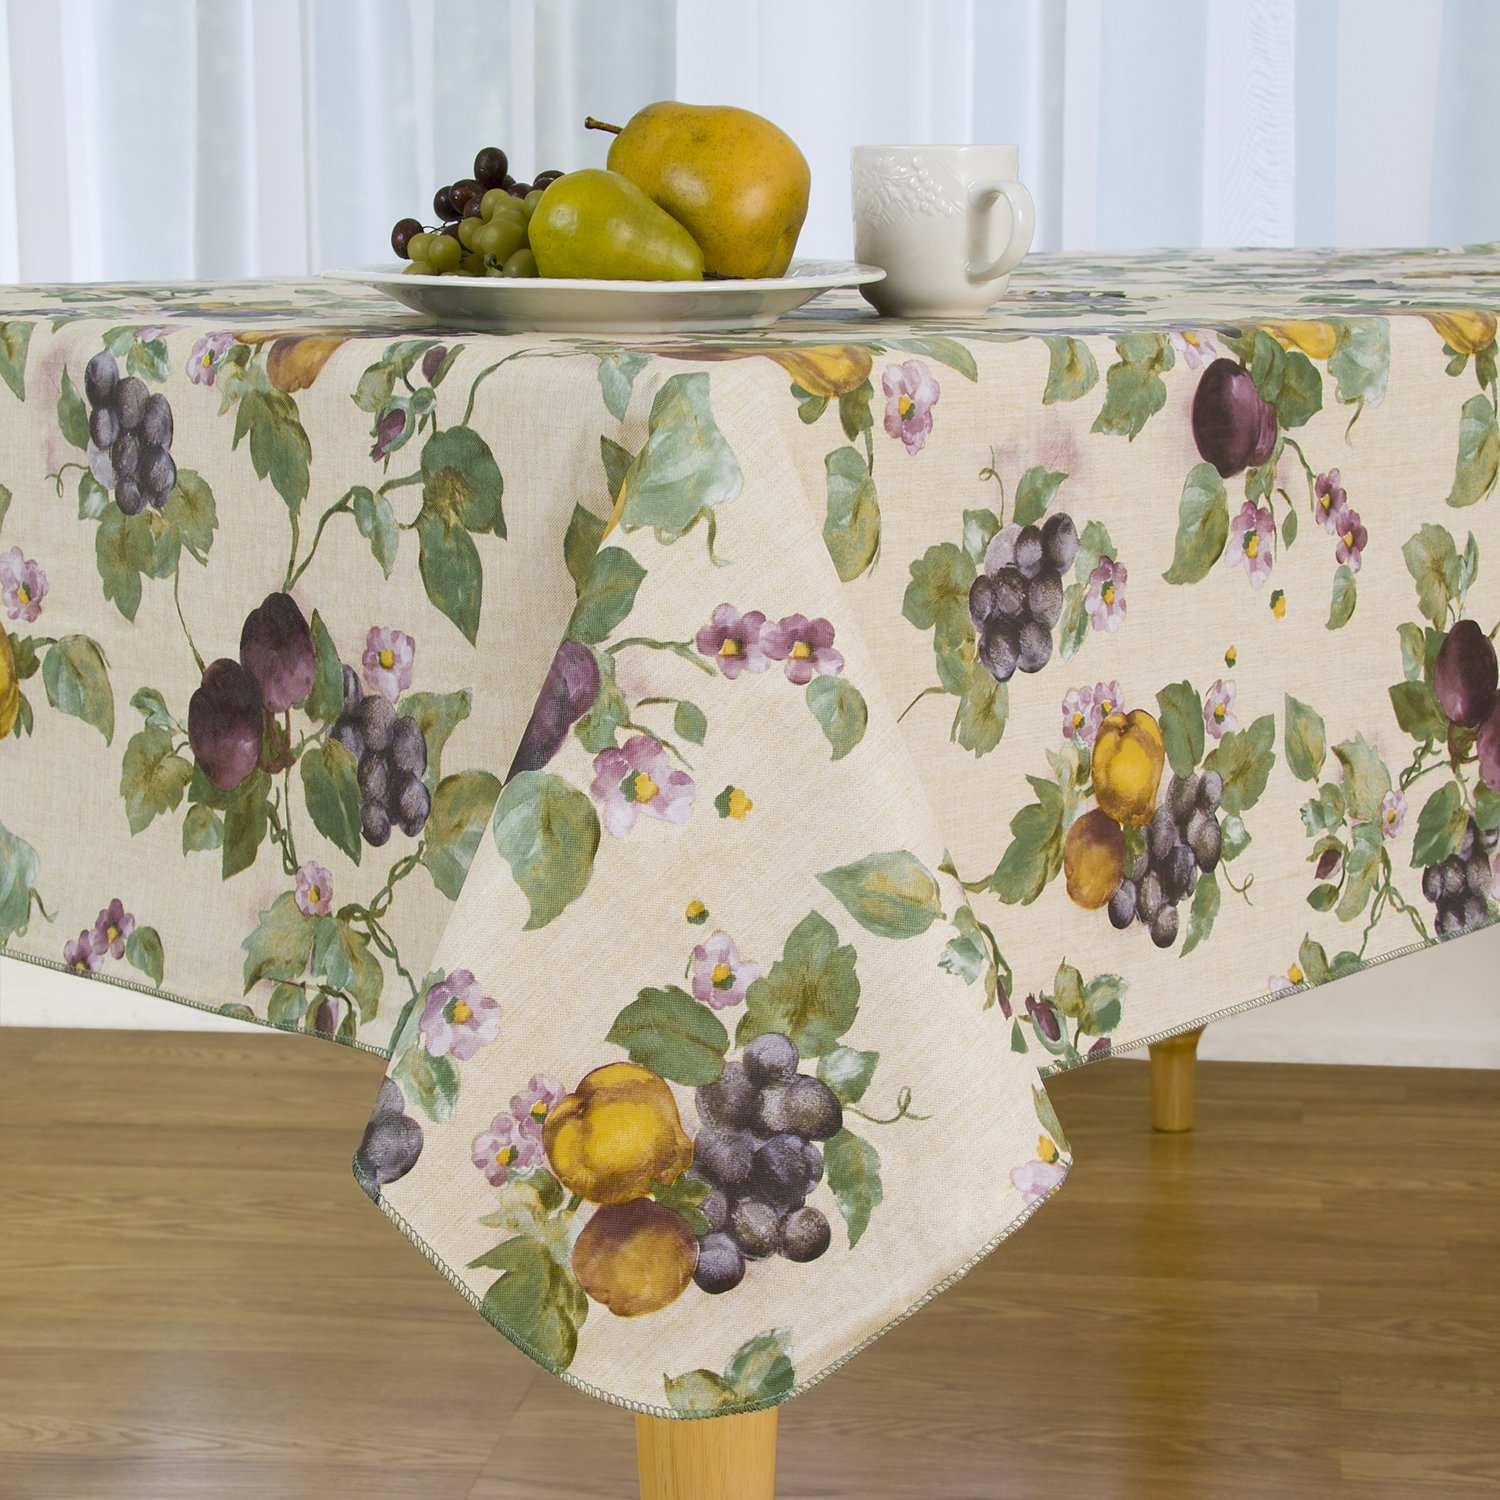 Elrene Home Fashions Fresco Fruit Vinyl Tablecloth 52'' x 70'' Oblong by Everyday Luxuries (Image #1)